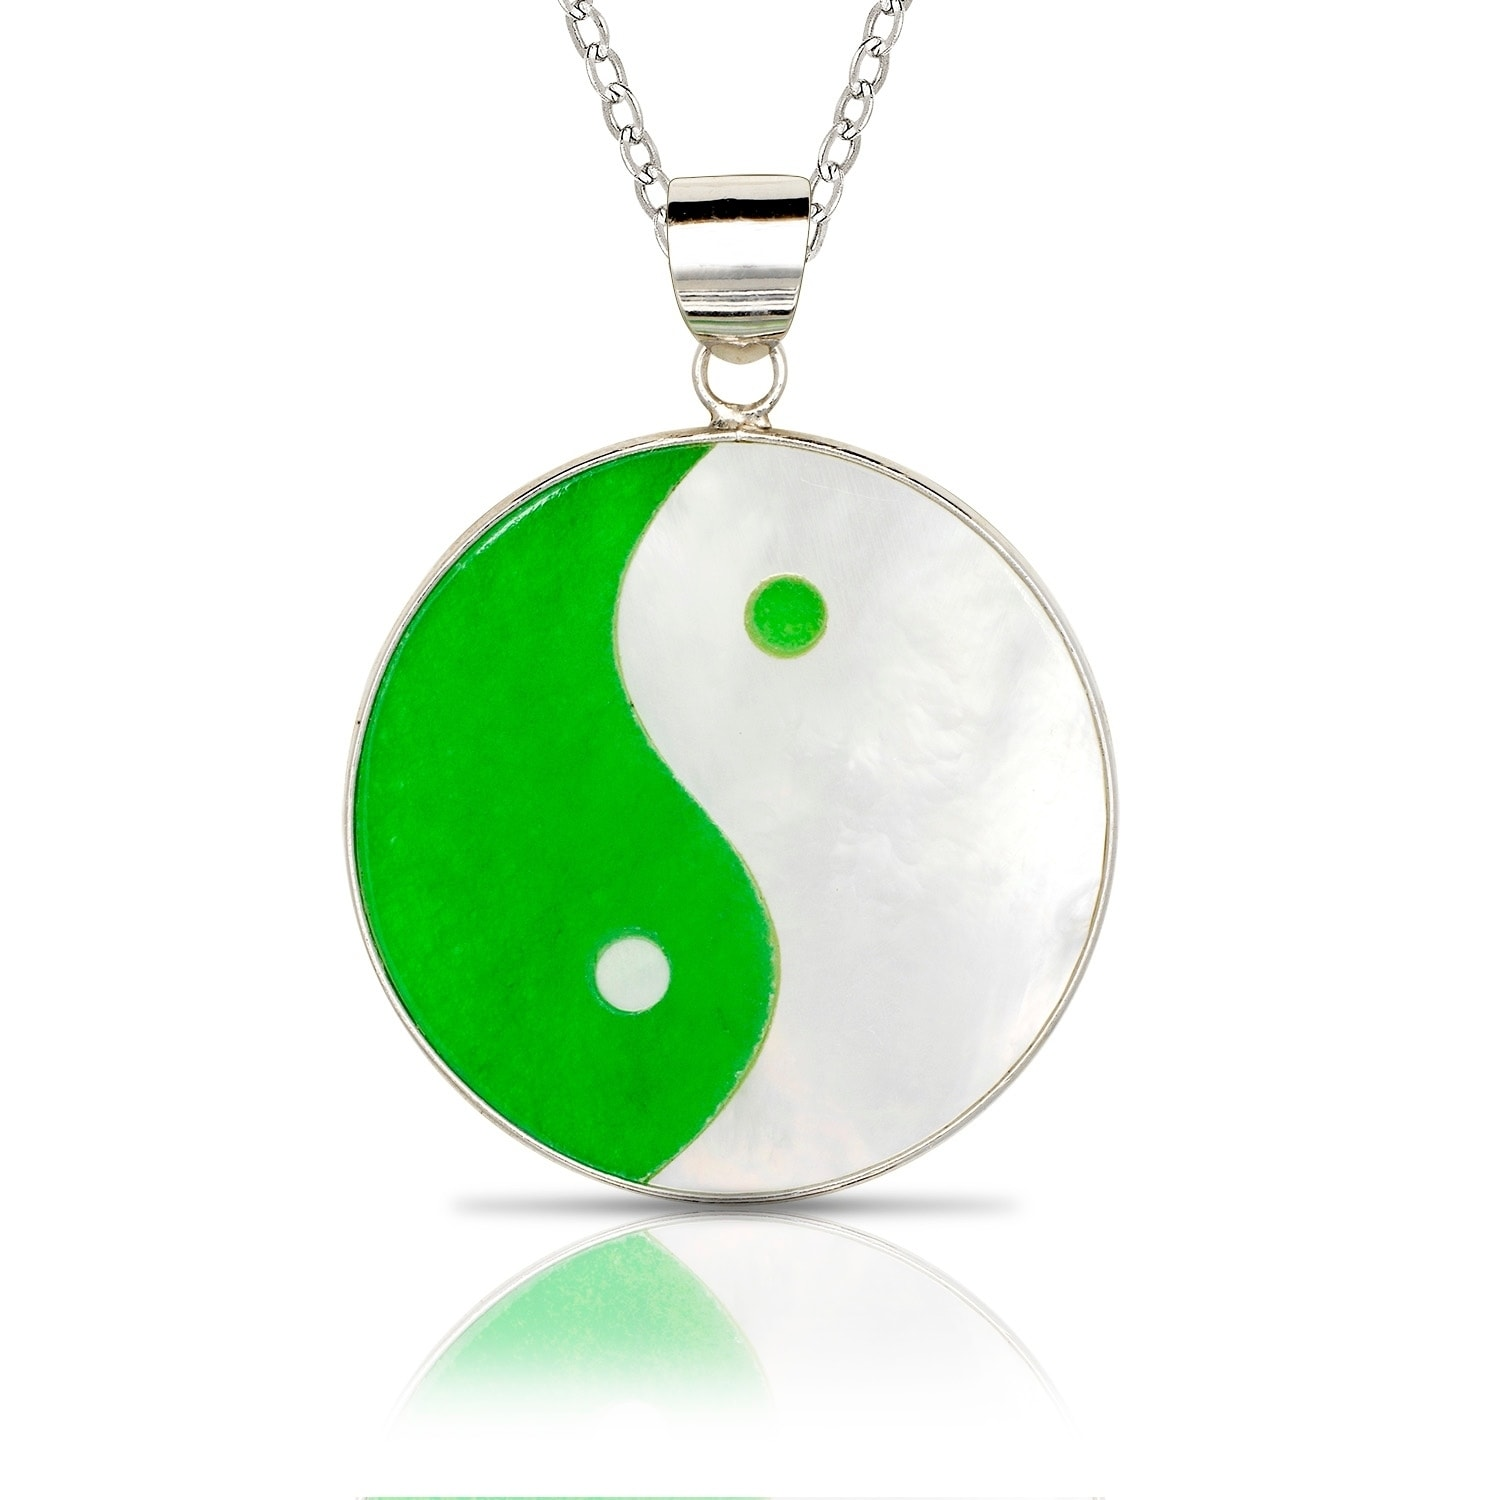 Shop 925 sterling silver 16 inch jademop ying yang circle pendant shop 925 sterling silver 16 inch jademop ying yang circle pendant necklace 25mm x 32mm green on sale free shipping today overstock 18793806 mozeypictures Choice Image